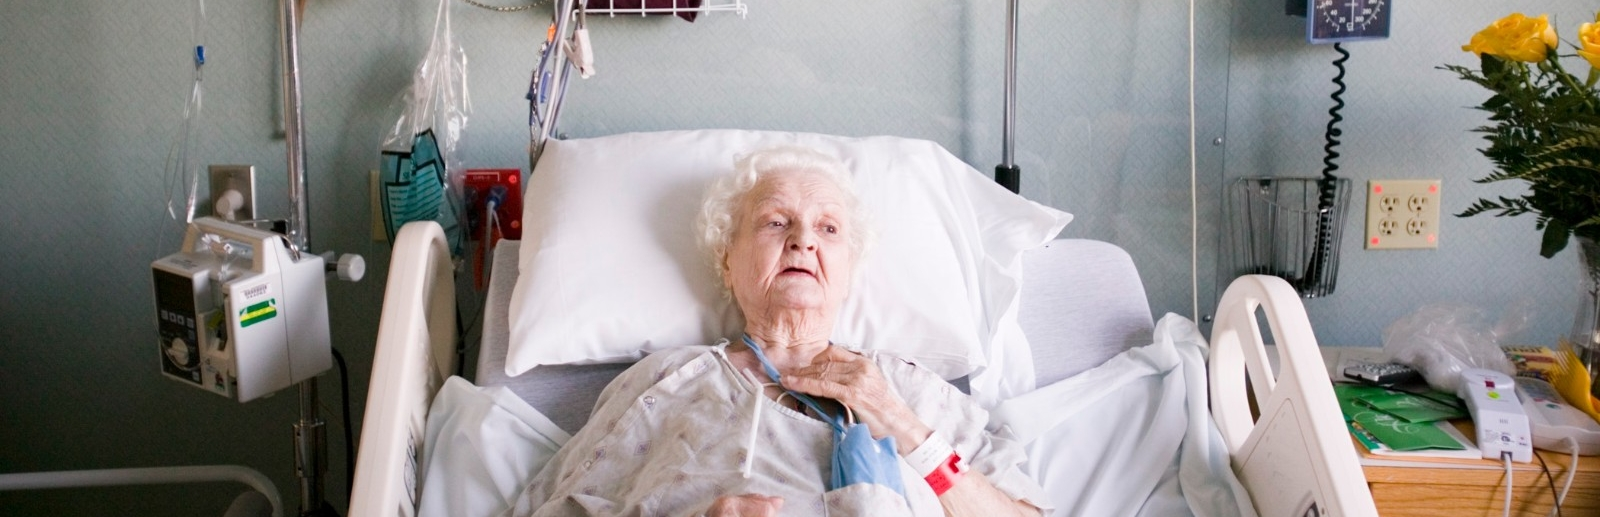 An elderly patient lying in a hospital bed.